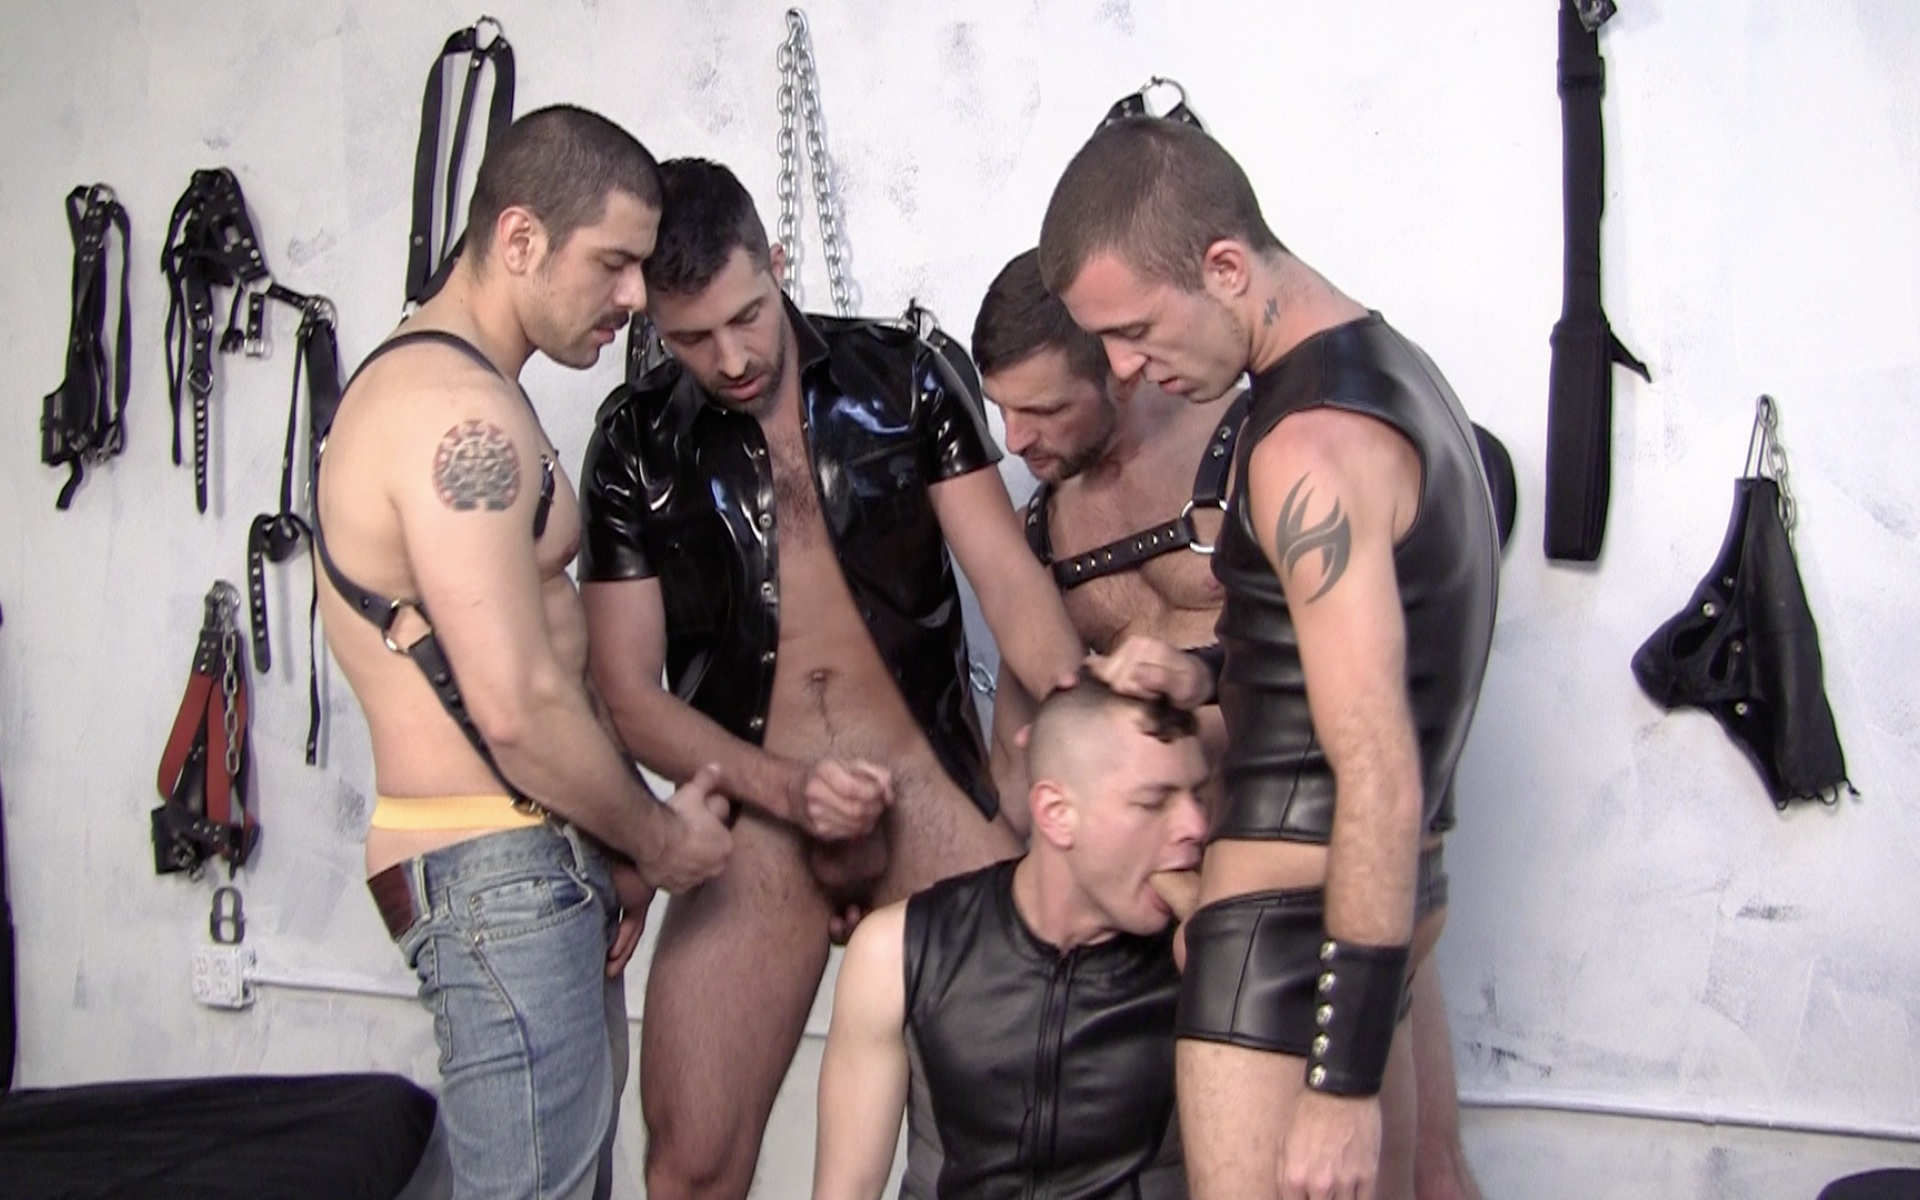 Leather orgy: Brandon, Jessy, Morgan, Dominic and Blue